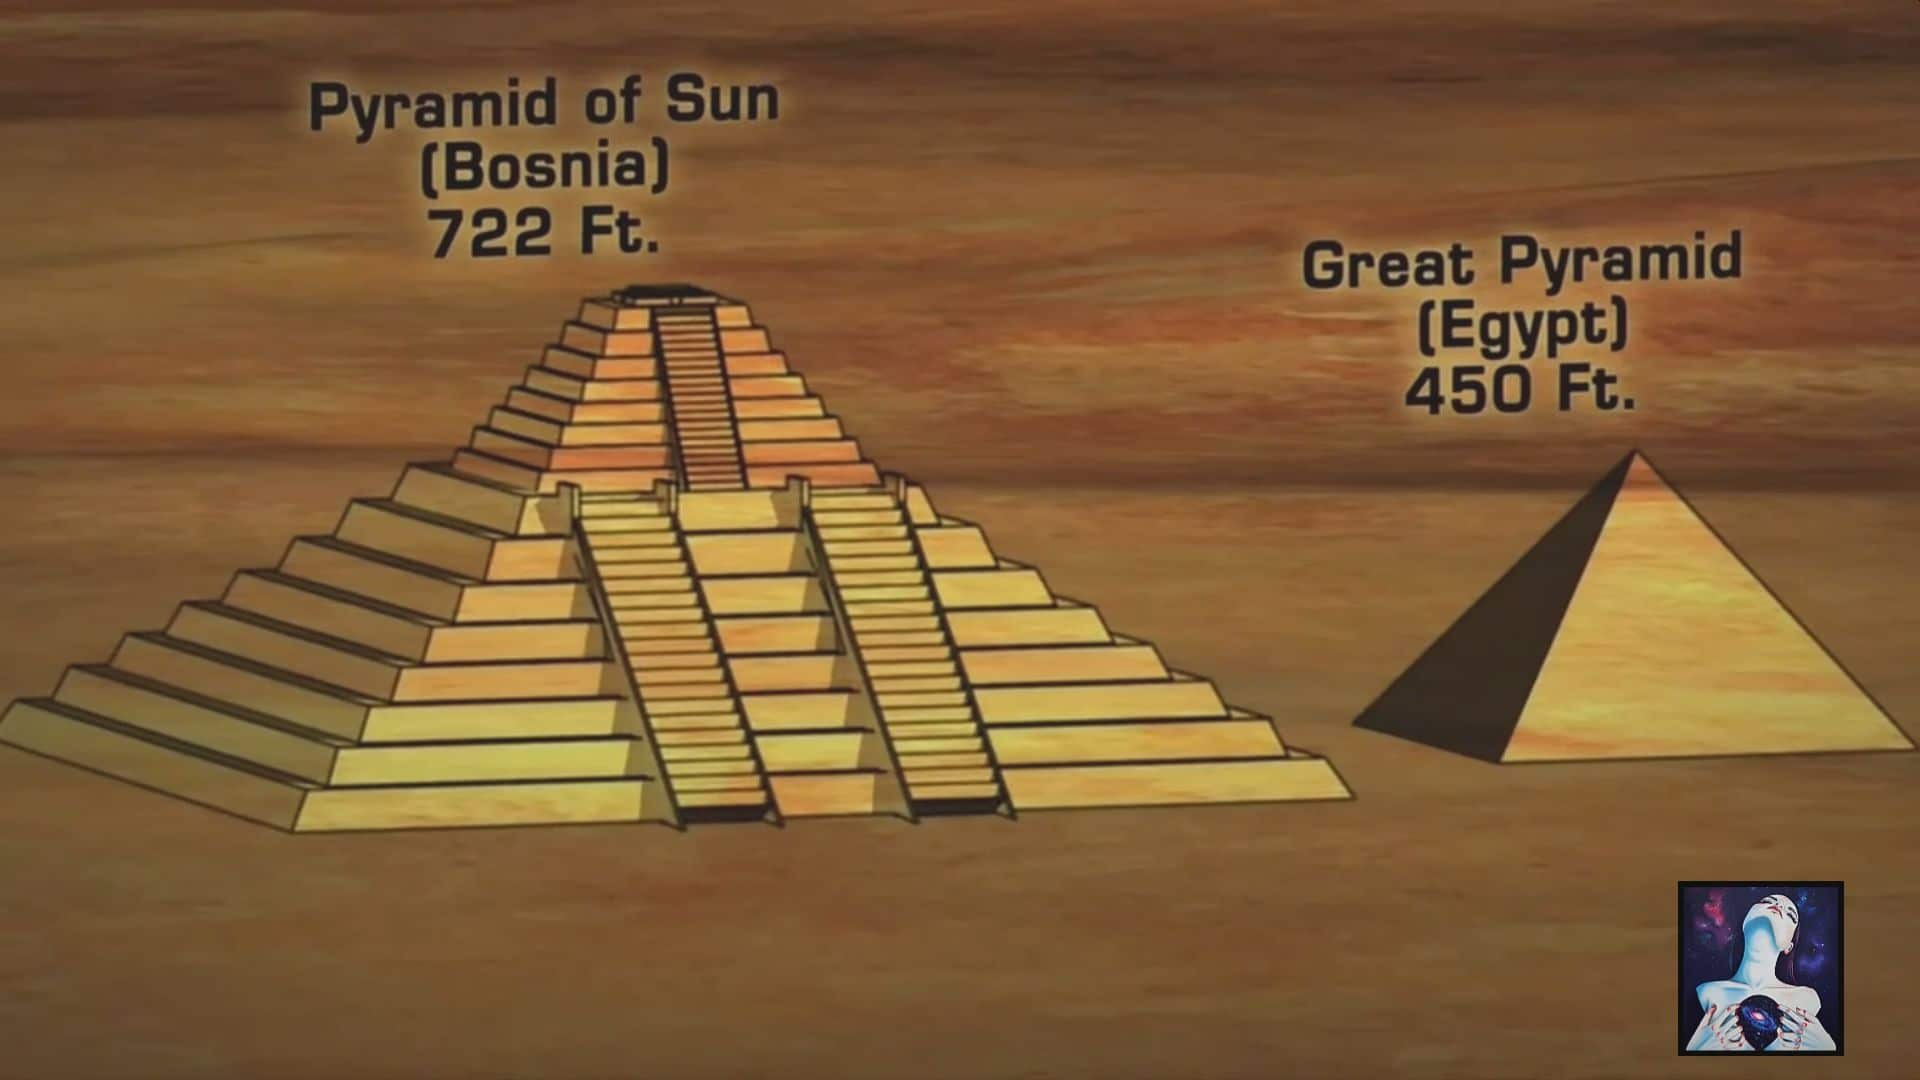 Bosnian Pyramid of the Sun and The Pyramid of Giza